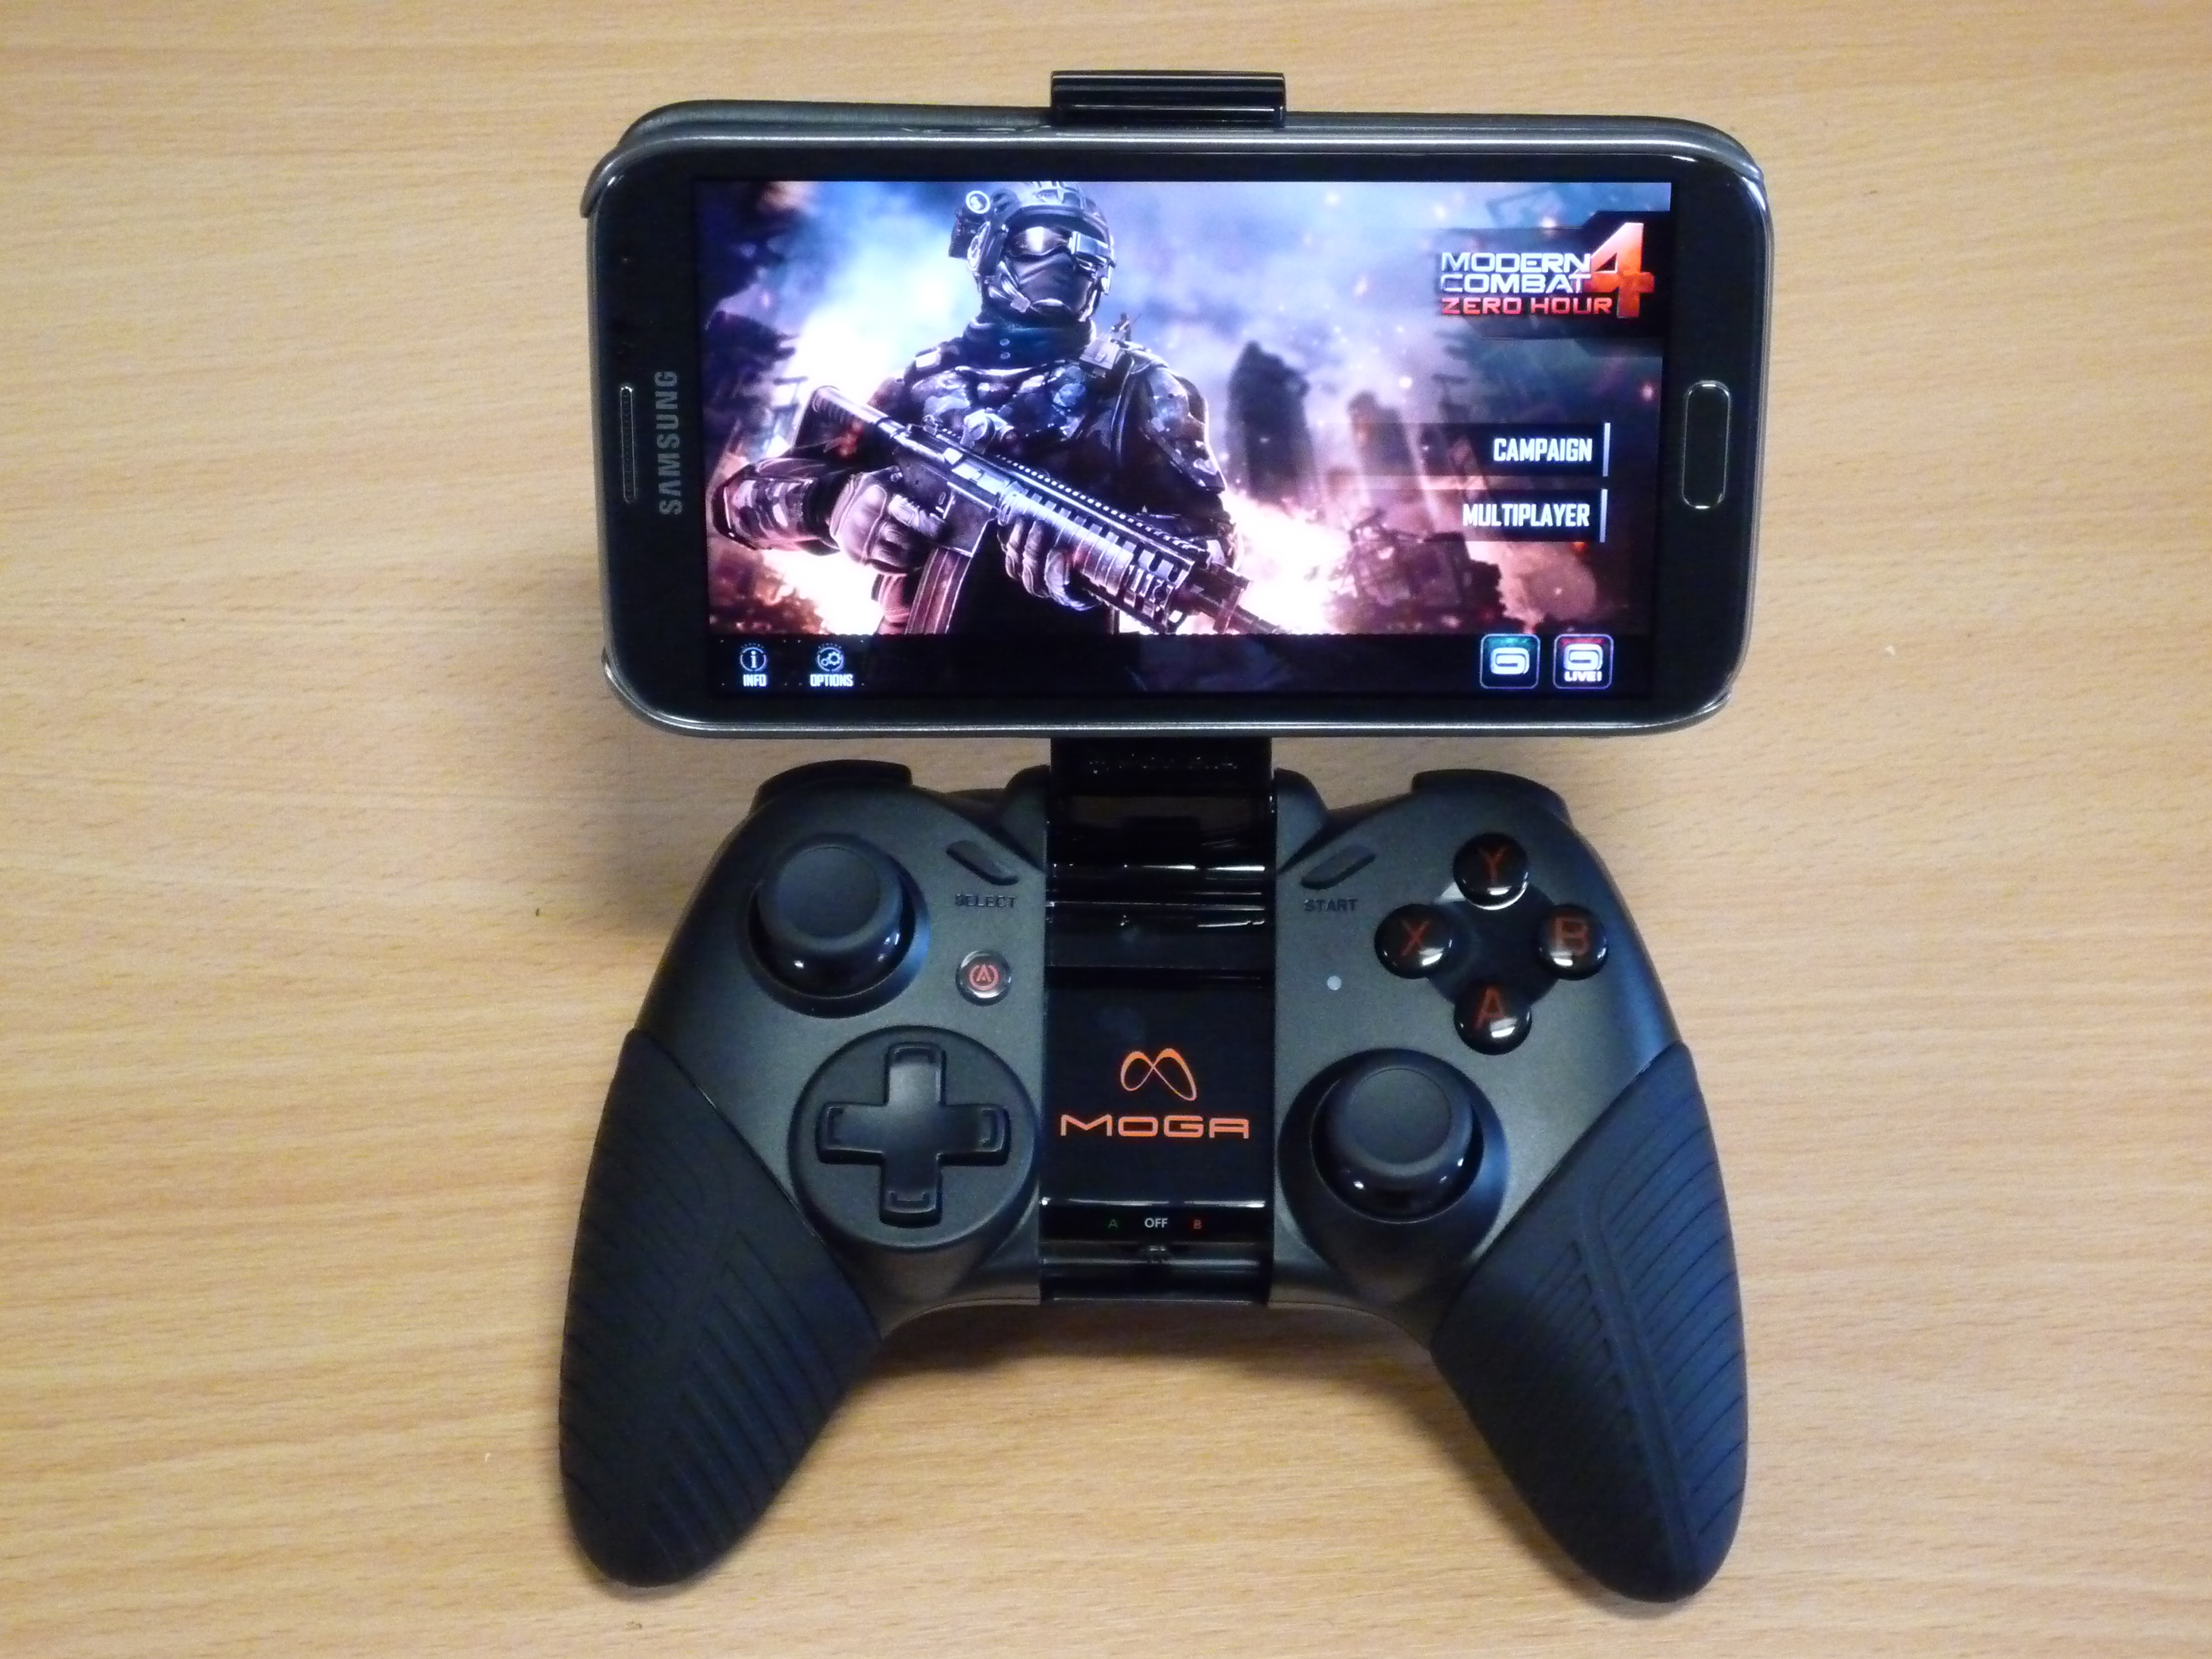 Moga Pro with Galaxy Note 2